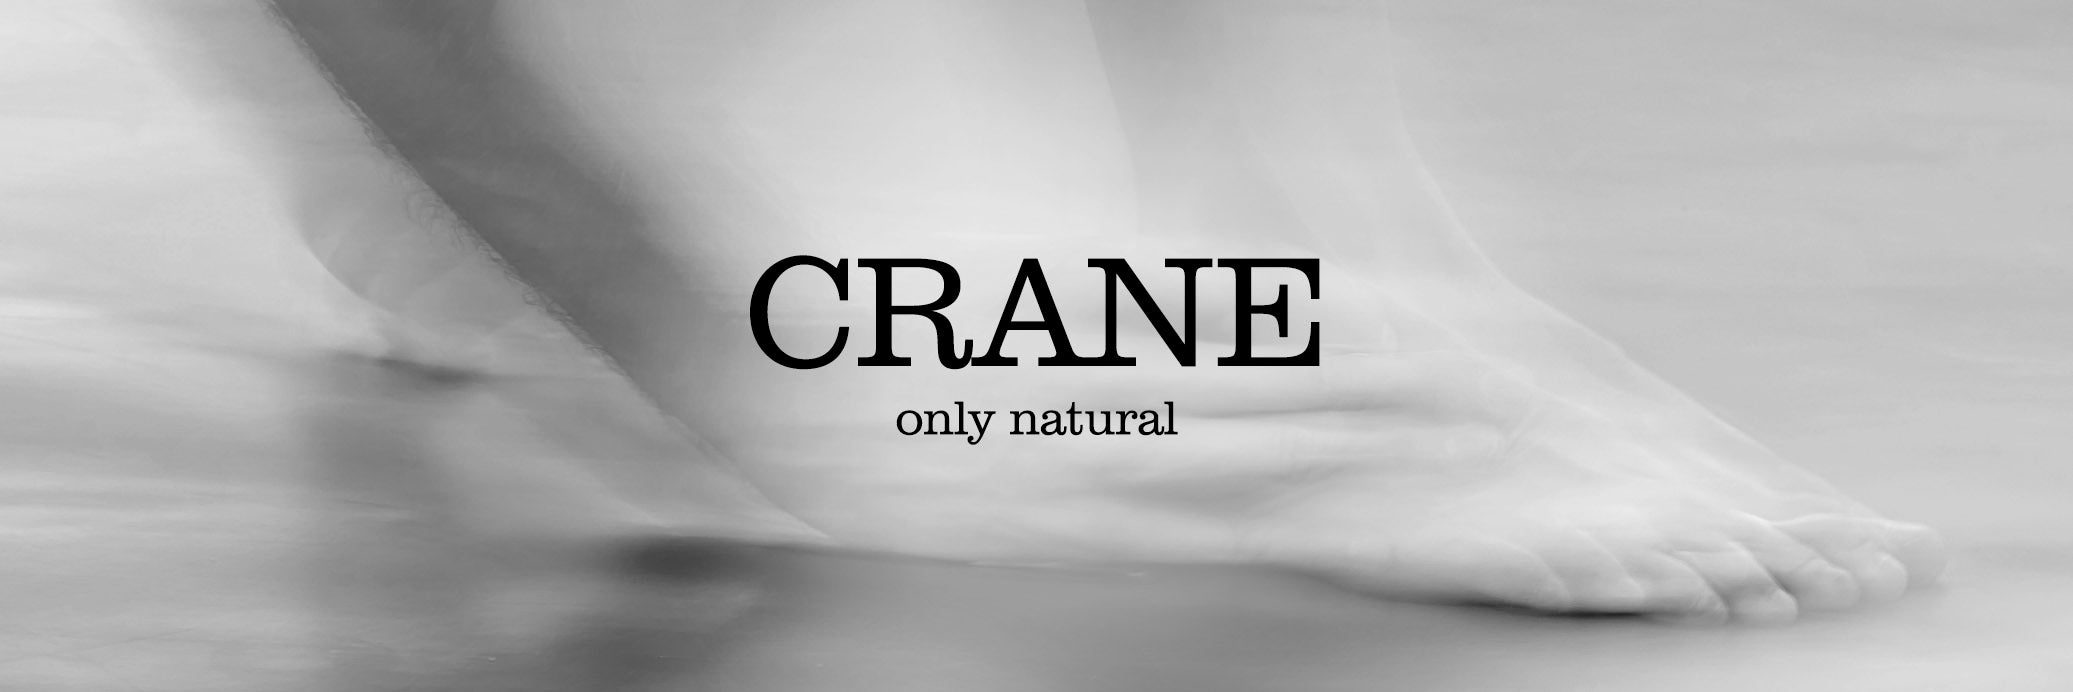 Crane, extrait de perfume only natural. By Bruns Fragrances,